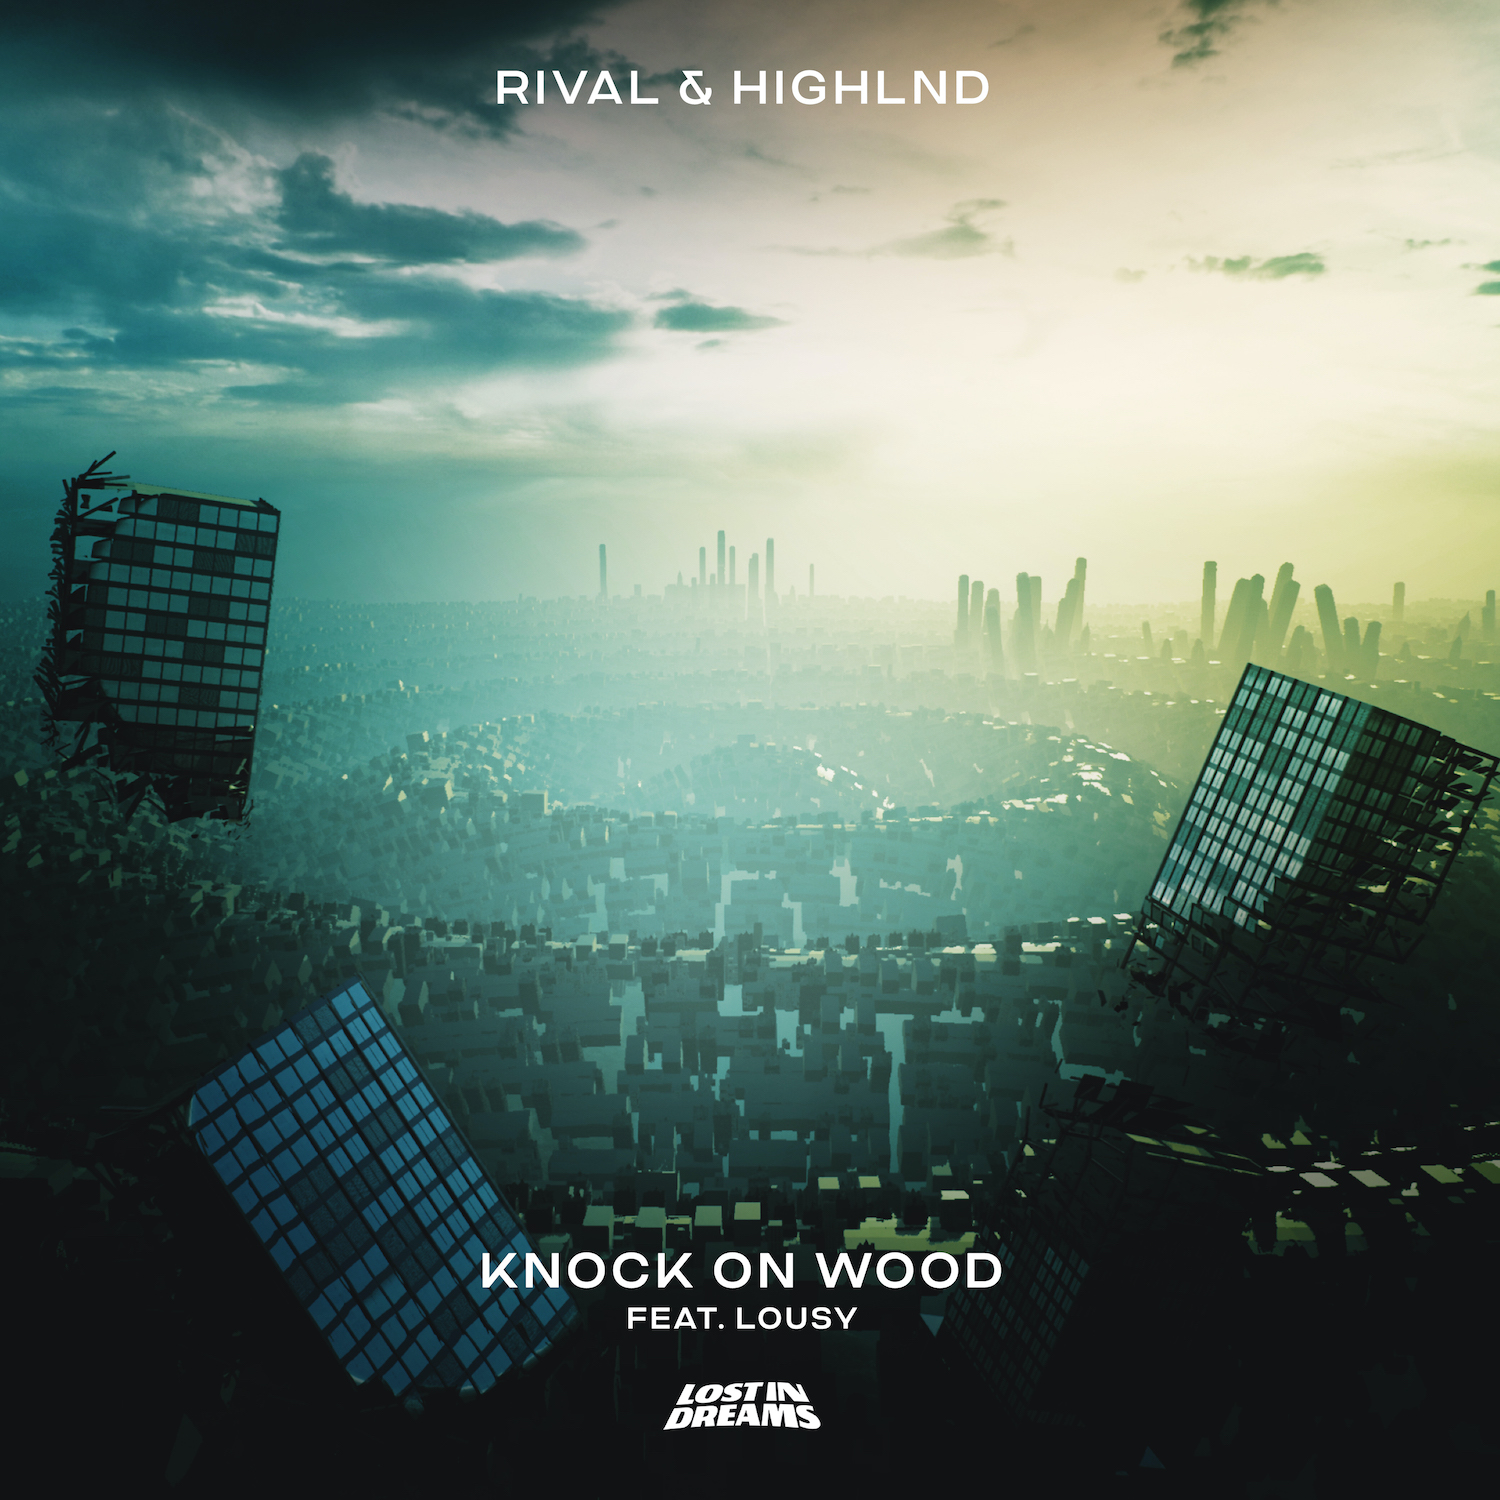 Rival & Highlnd - Knock On Wood ft. Lousy